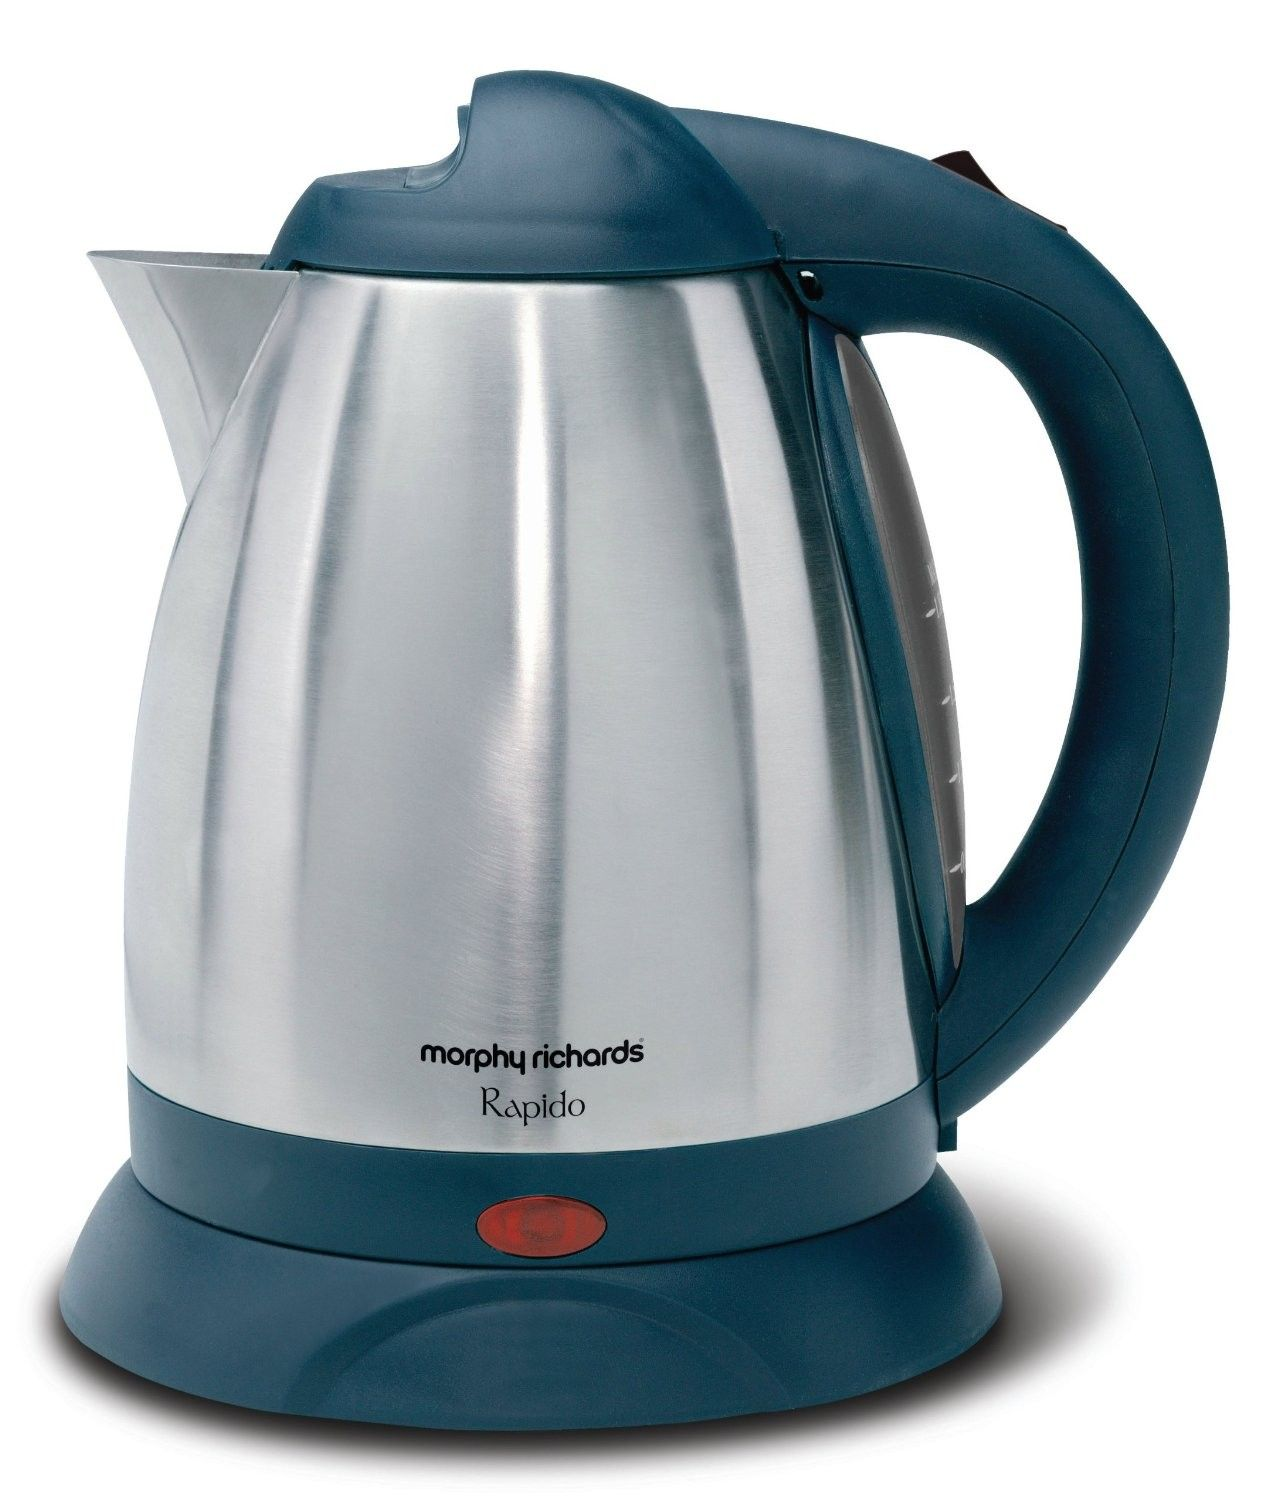 Morphy Richards Ekspres Pour Over: Morphy Richards Rapido 1.8-Litre Stainless Steel Electric